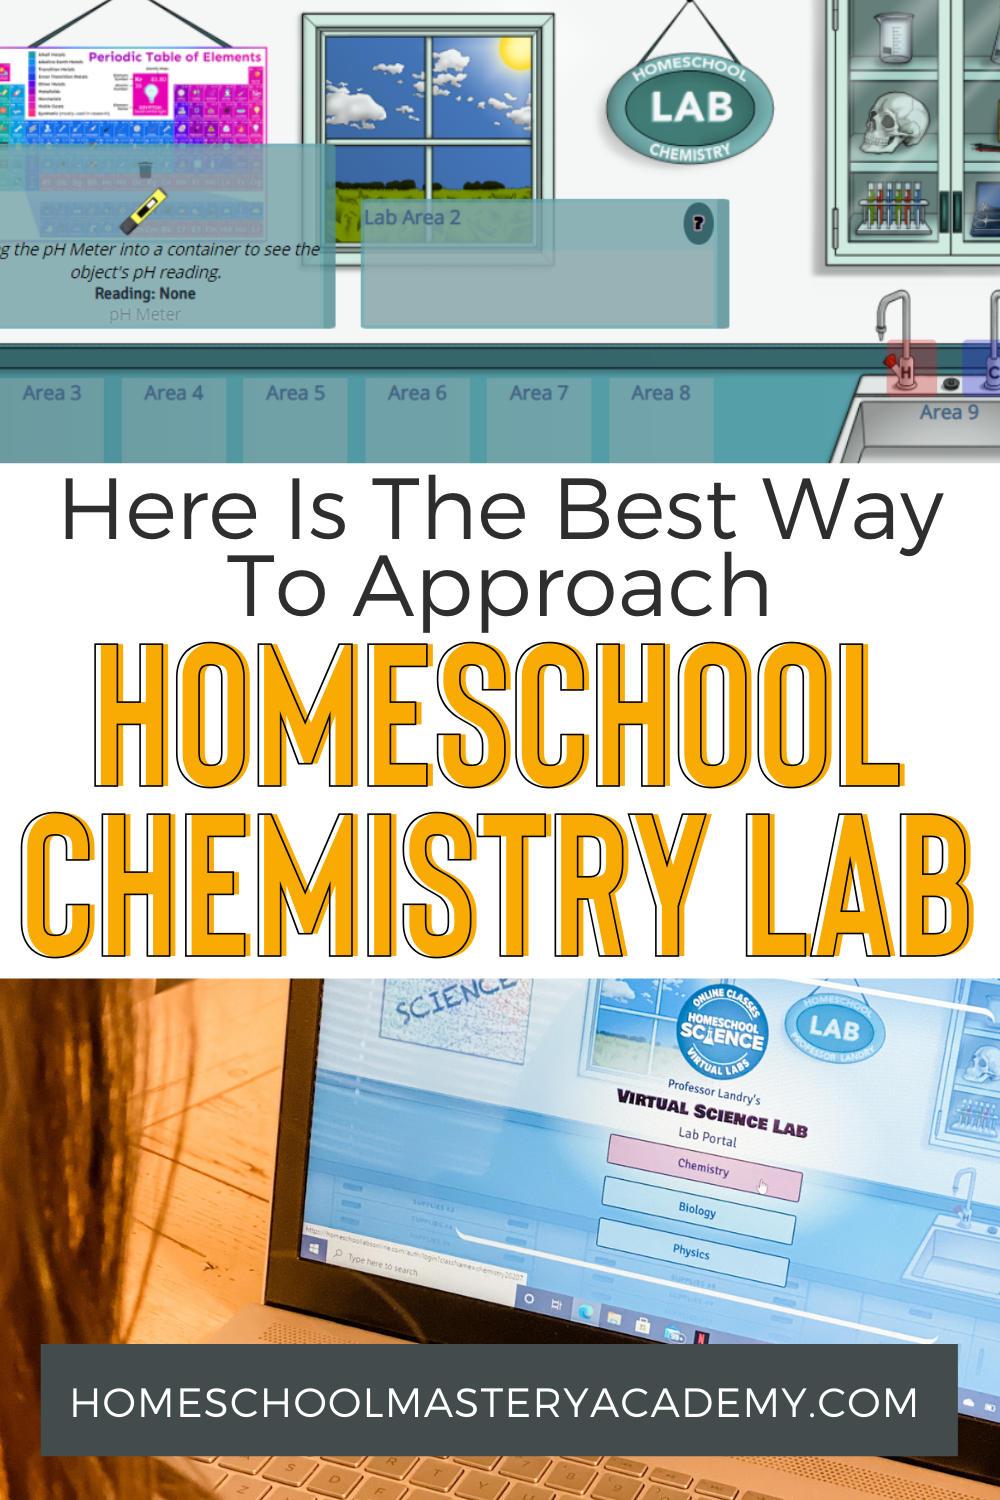 Virtual Homeschool Chemistry Labs for Homeschoolers. Check out how simple it is to cmplete science labs for high school online! #homeschool #homeschoolscience #virtuallabs #science